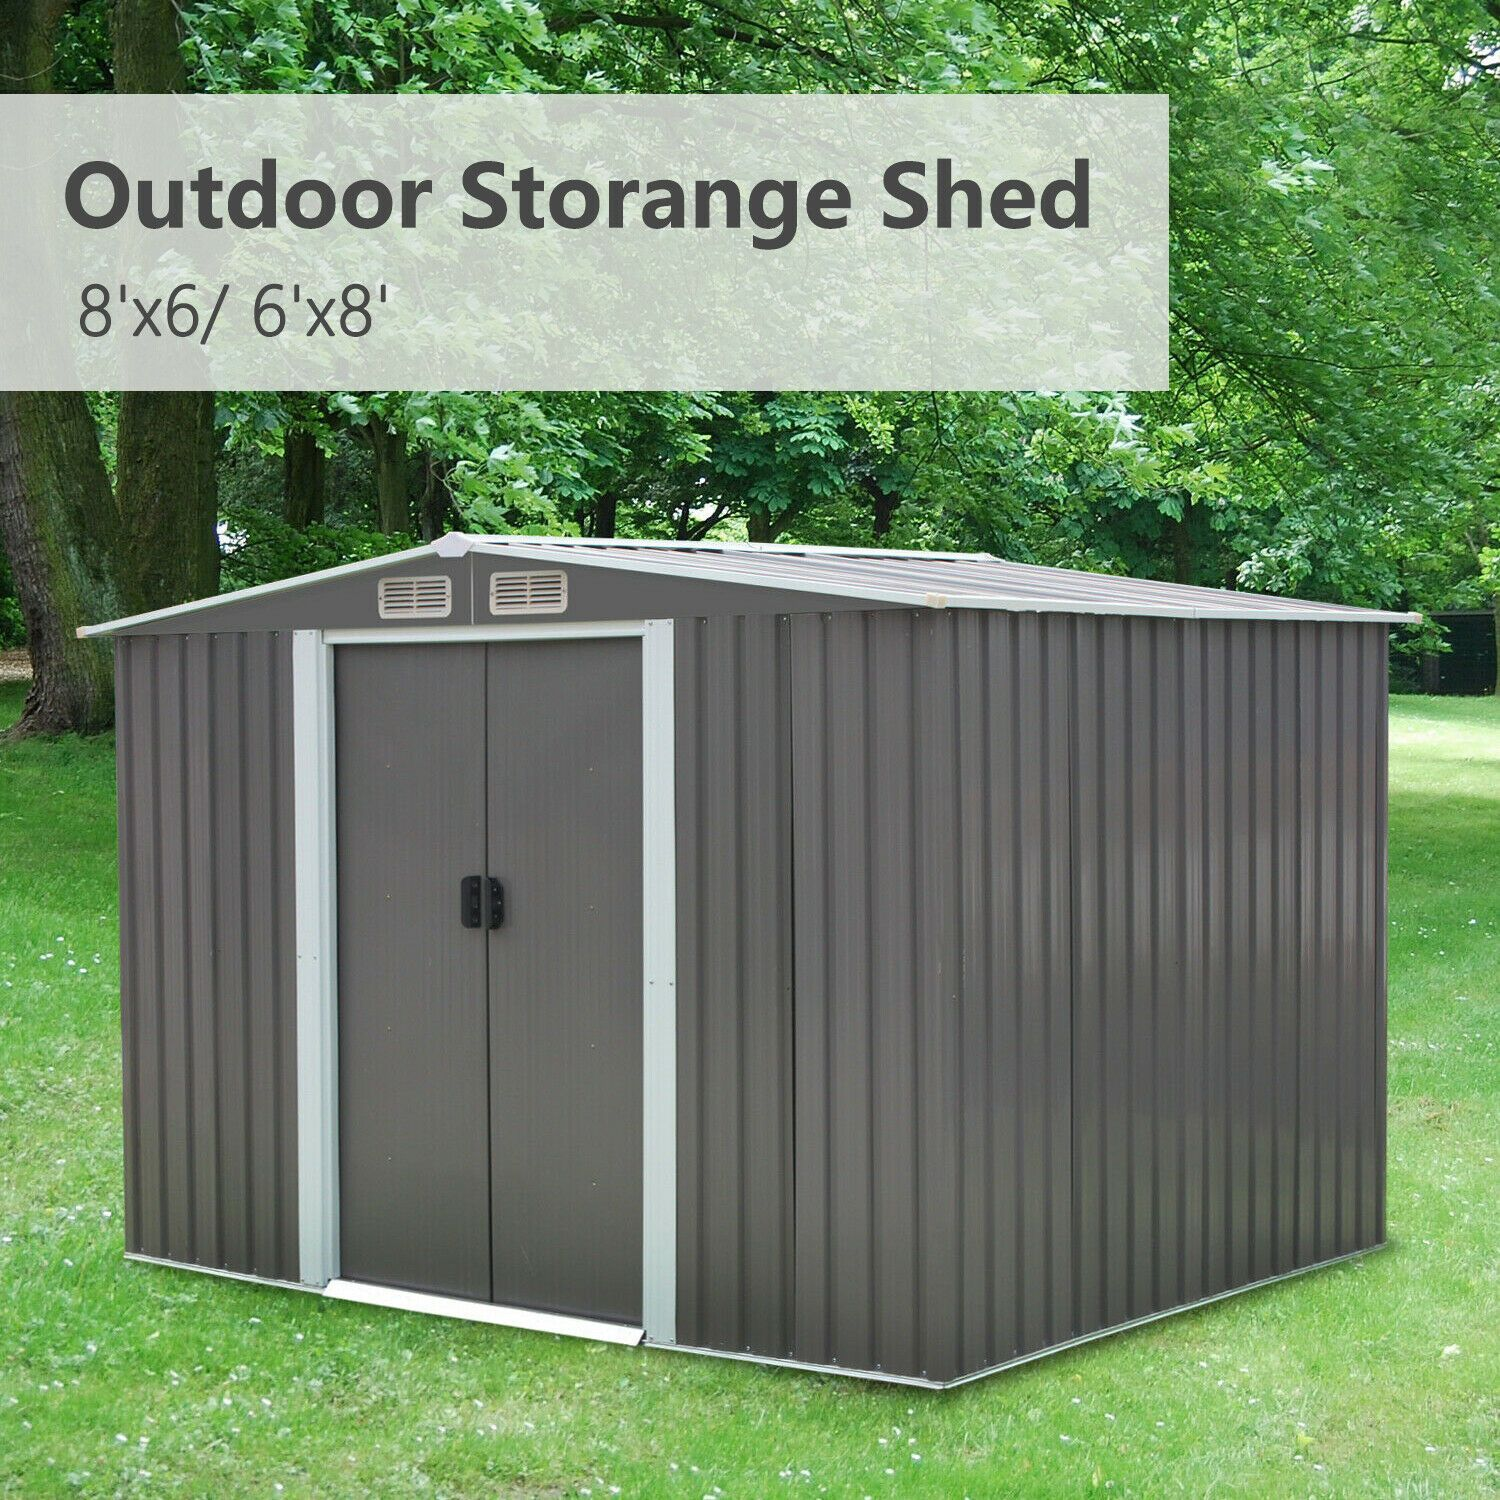 8 X6 Outdoor Garden Storage Shed Tool House Sliding Door Steel Backyard Outdoor Garden Storage Garden Storage Shed Shed